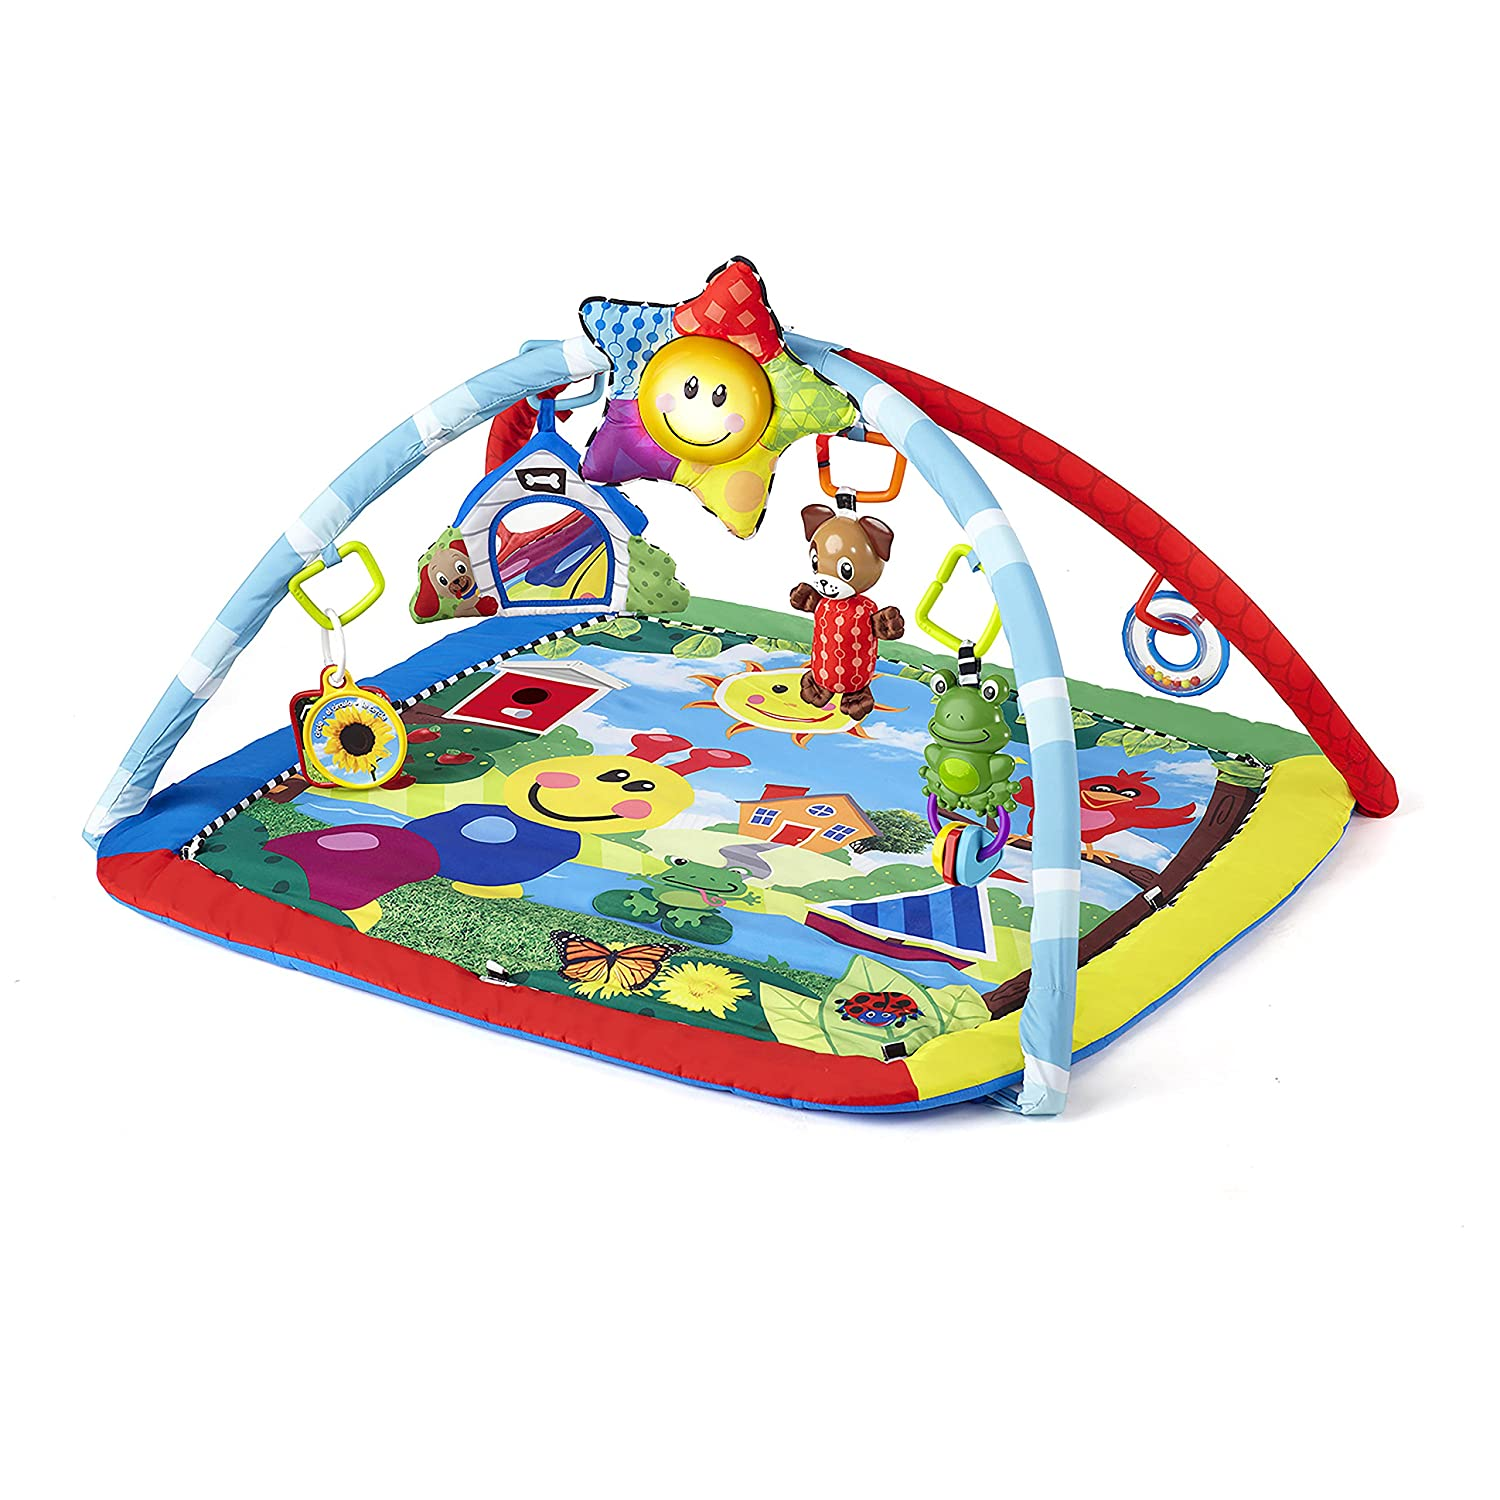 Baby Einstein Caterpillar & Friends Play Gym with Lights and Melodies, Ages Newborn + Kids II 90575